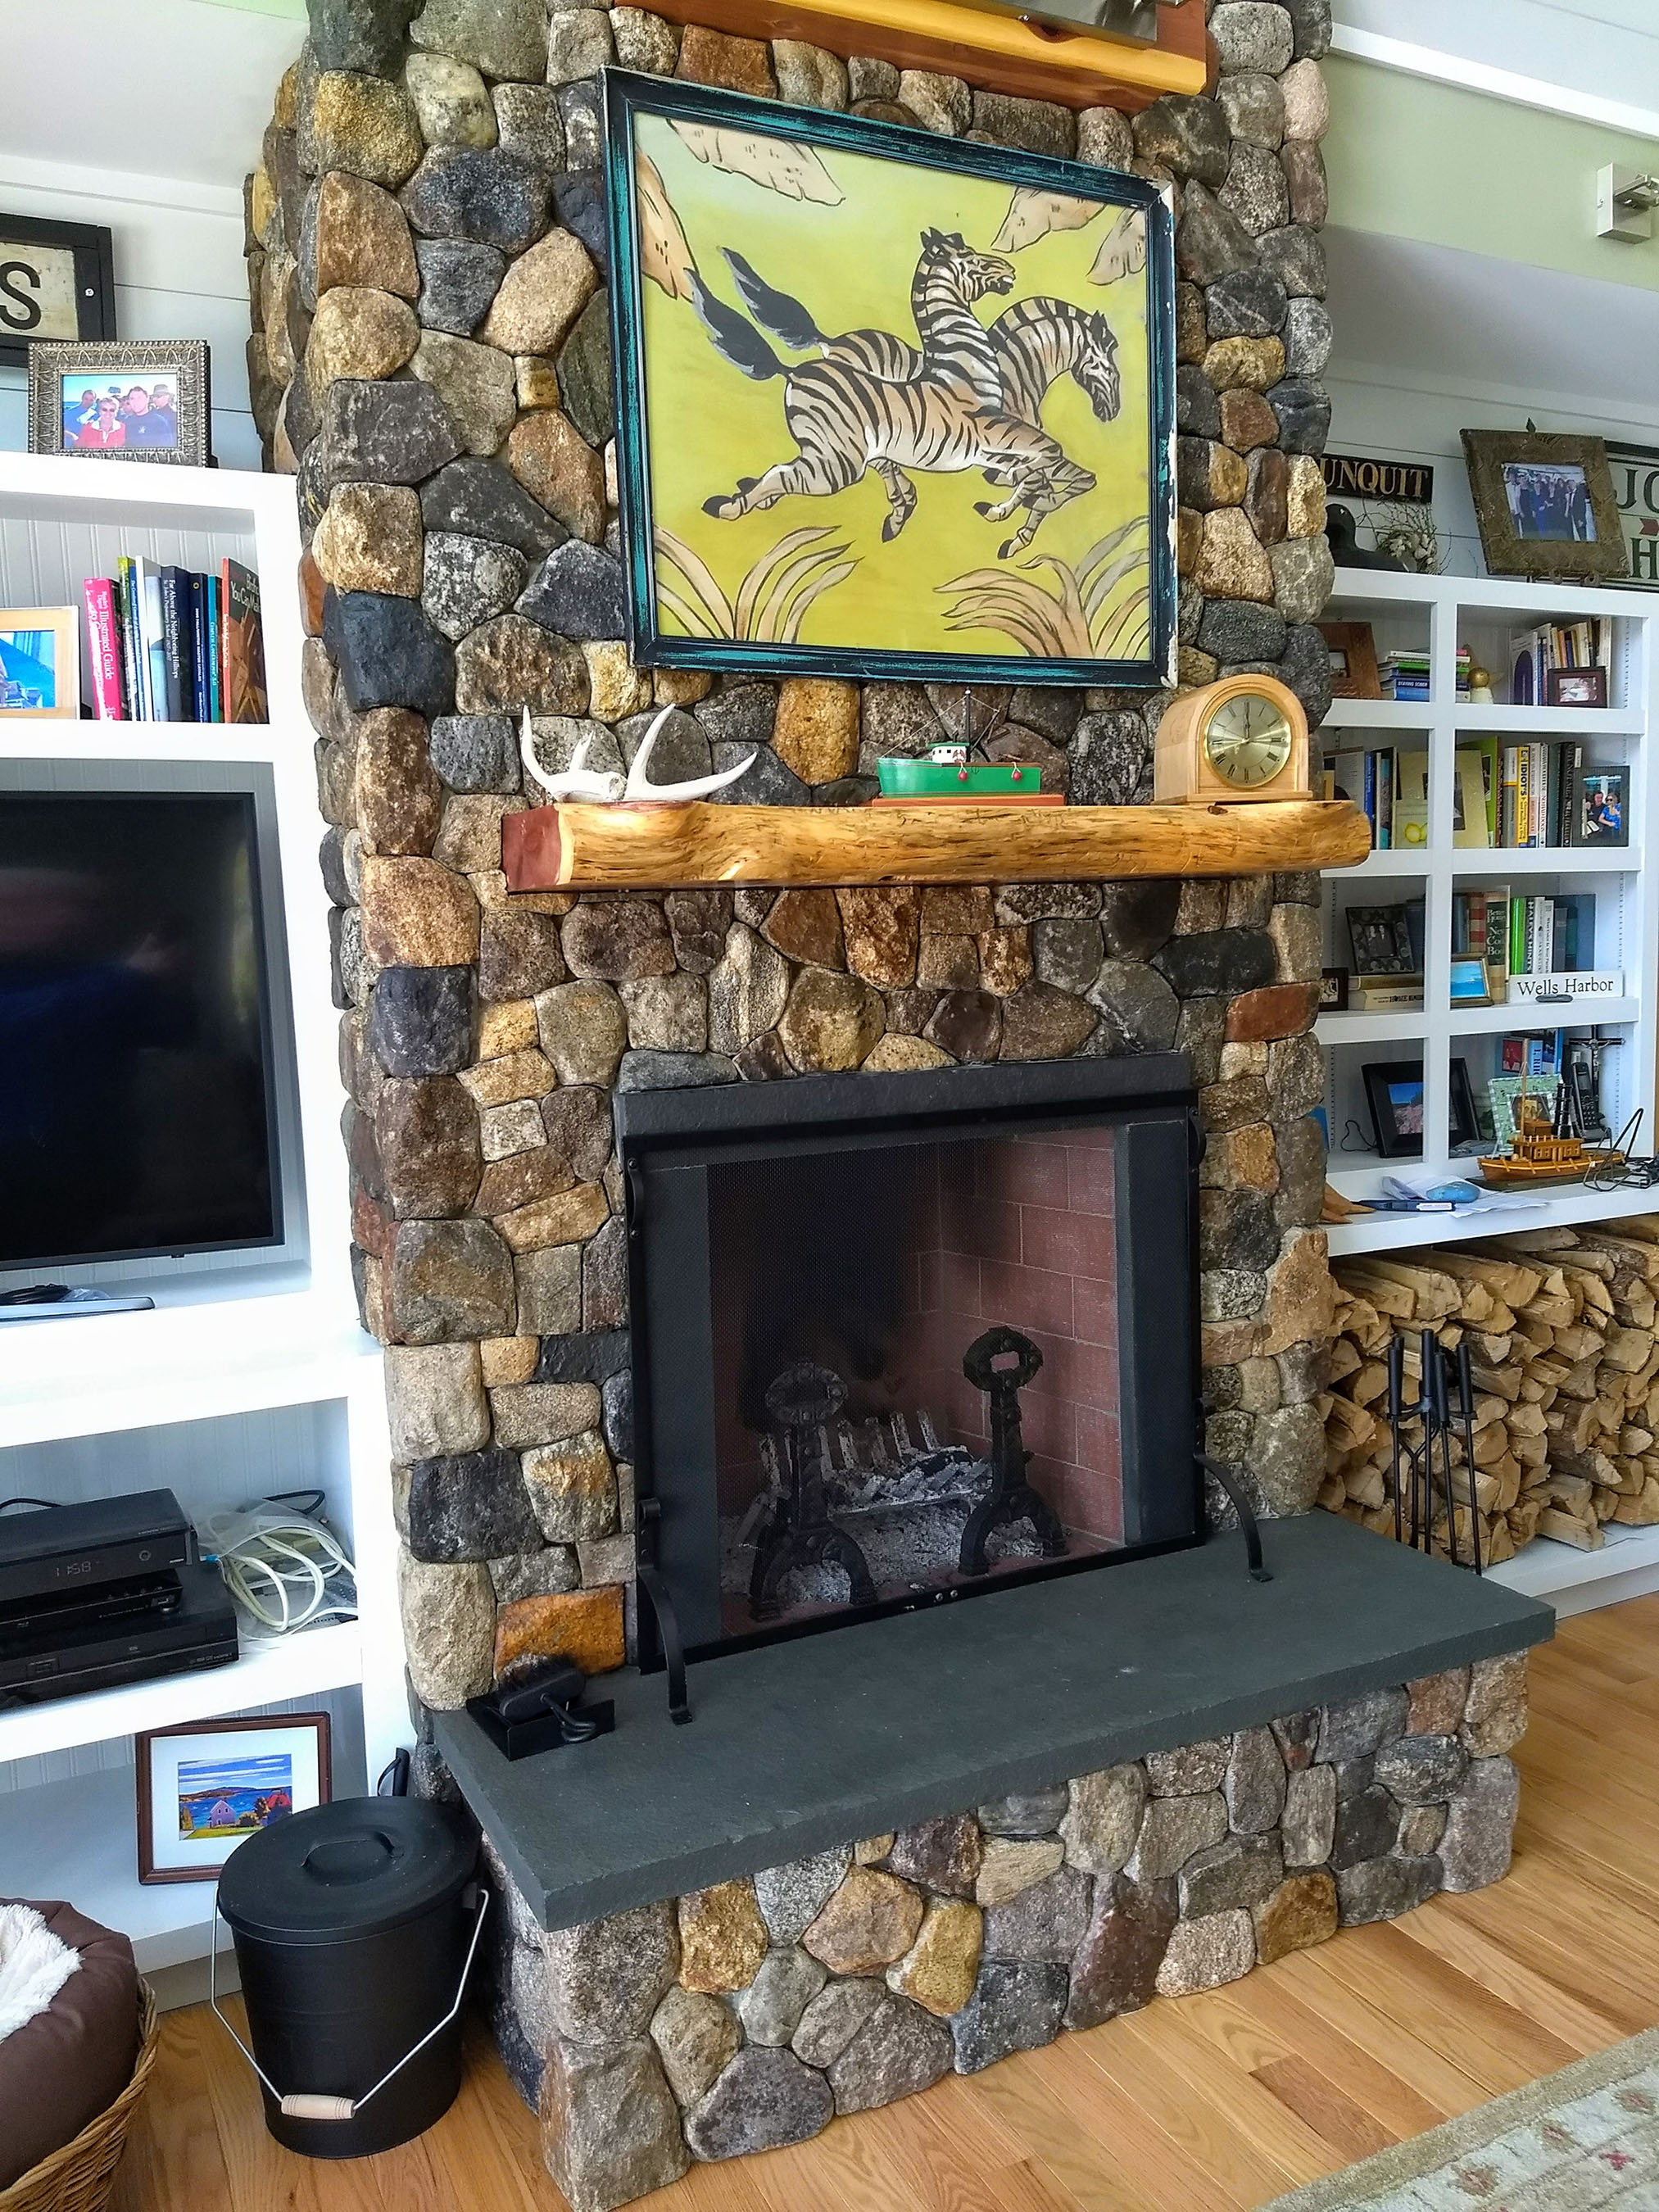 Swell How To Fix A Smoking Fireplace The Washington Post Download Free Architecture Designs Xerocsunscenecom